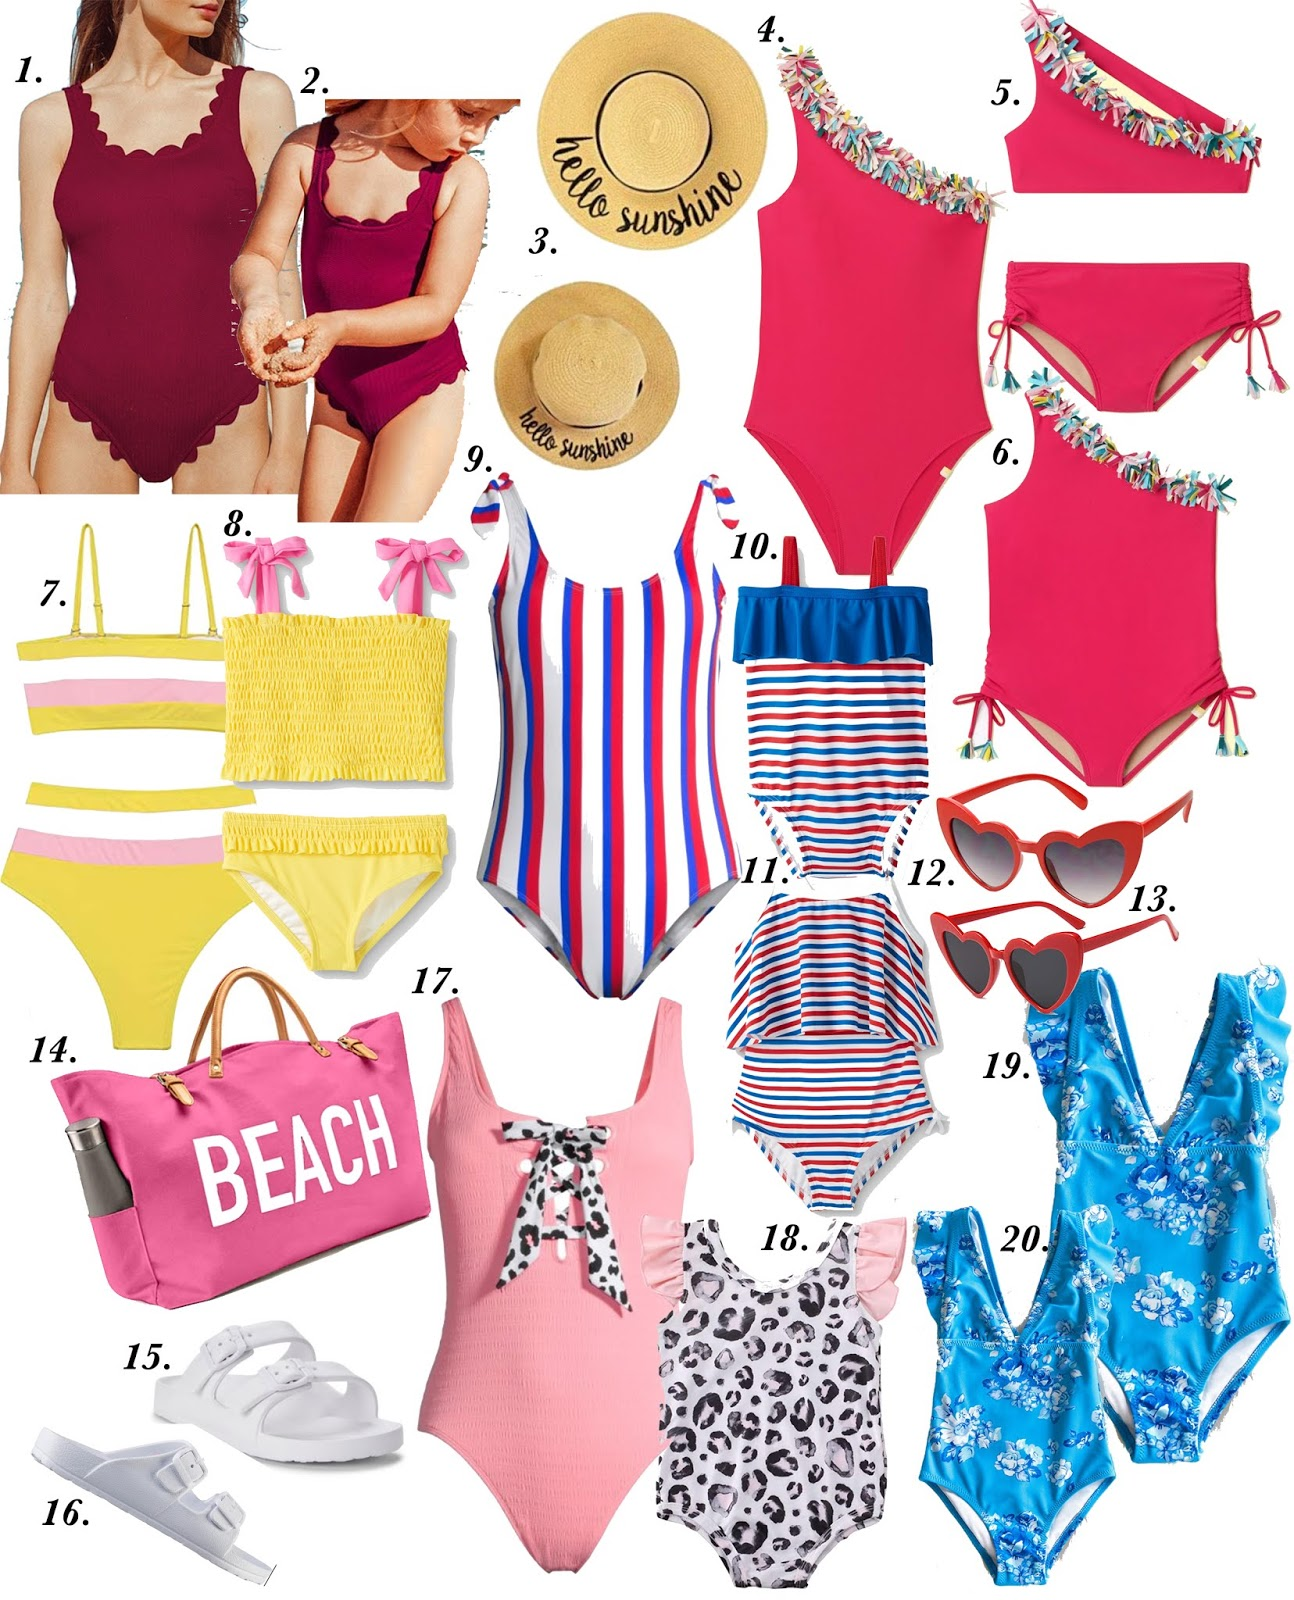 The 2020 Ultimate Guide To Mommy & Me Swim Looks - Something Delightful Blog #mommyandmeswim #kidsswimsuits #affordableswimsuits #summerstyle